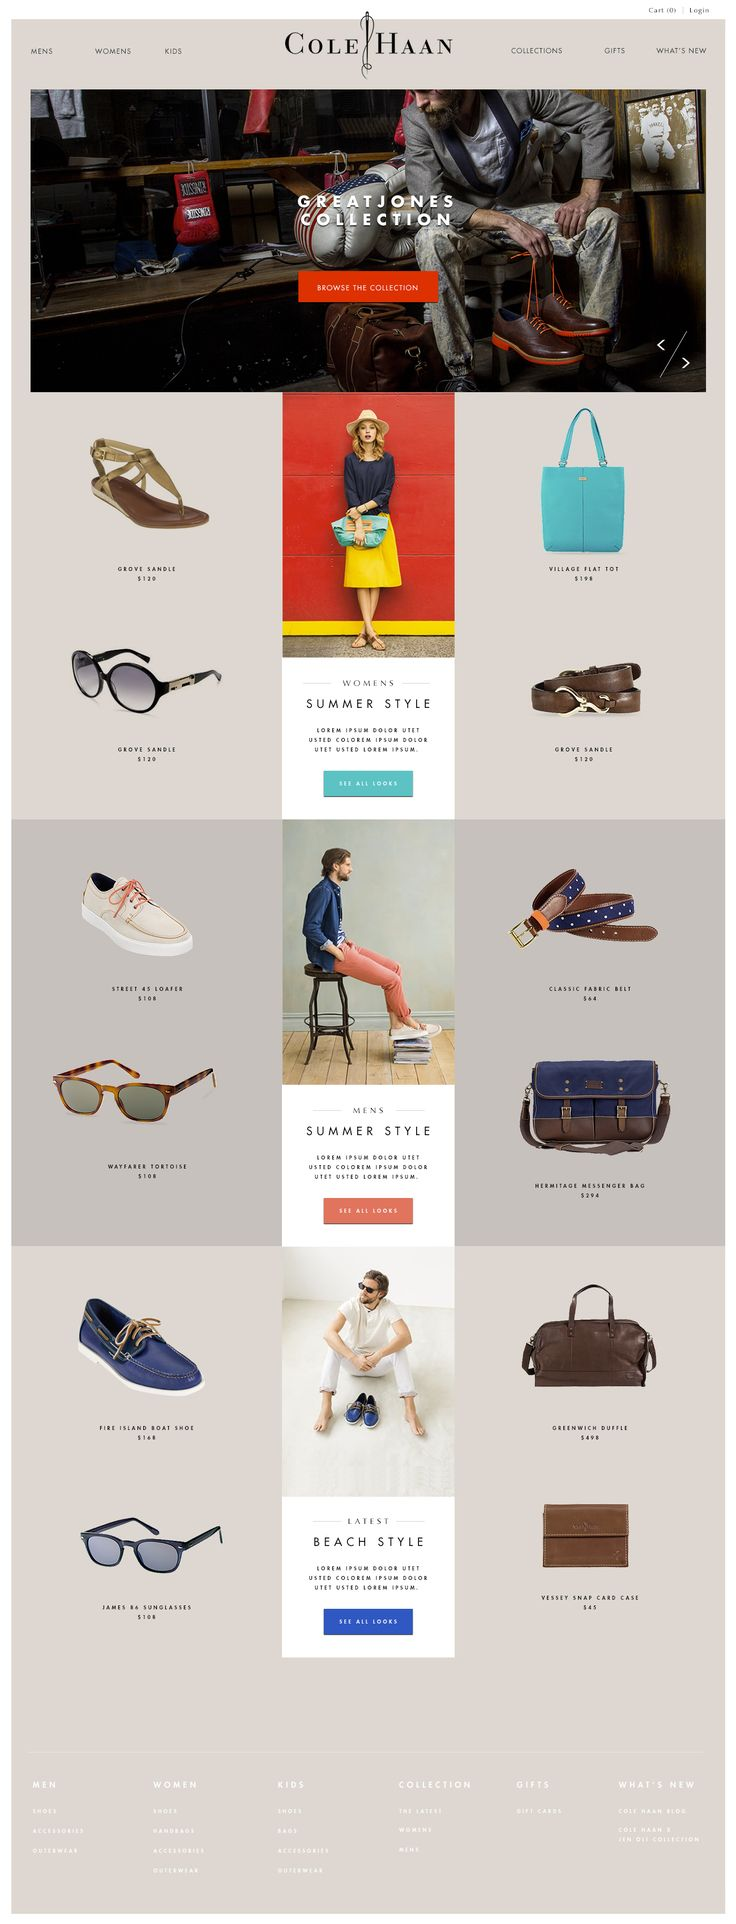 cole_haan_homepage_comp.jpg - note the button colors:  picked from the box image, instead of colored by function.